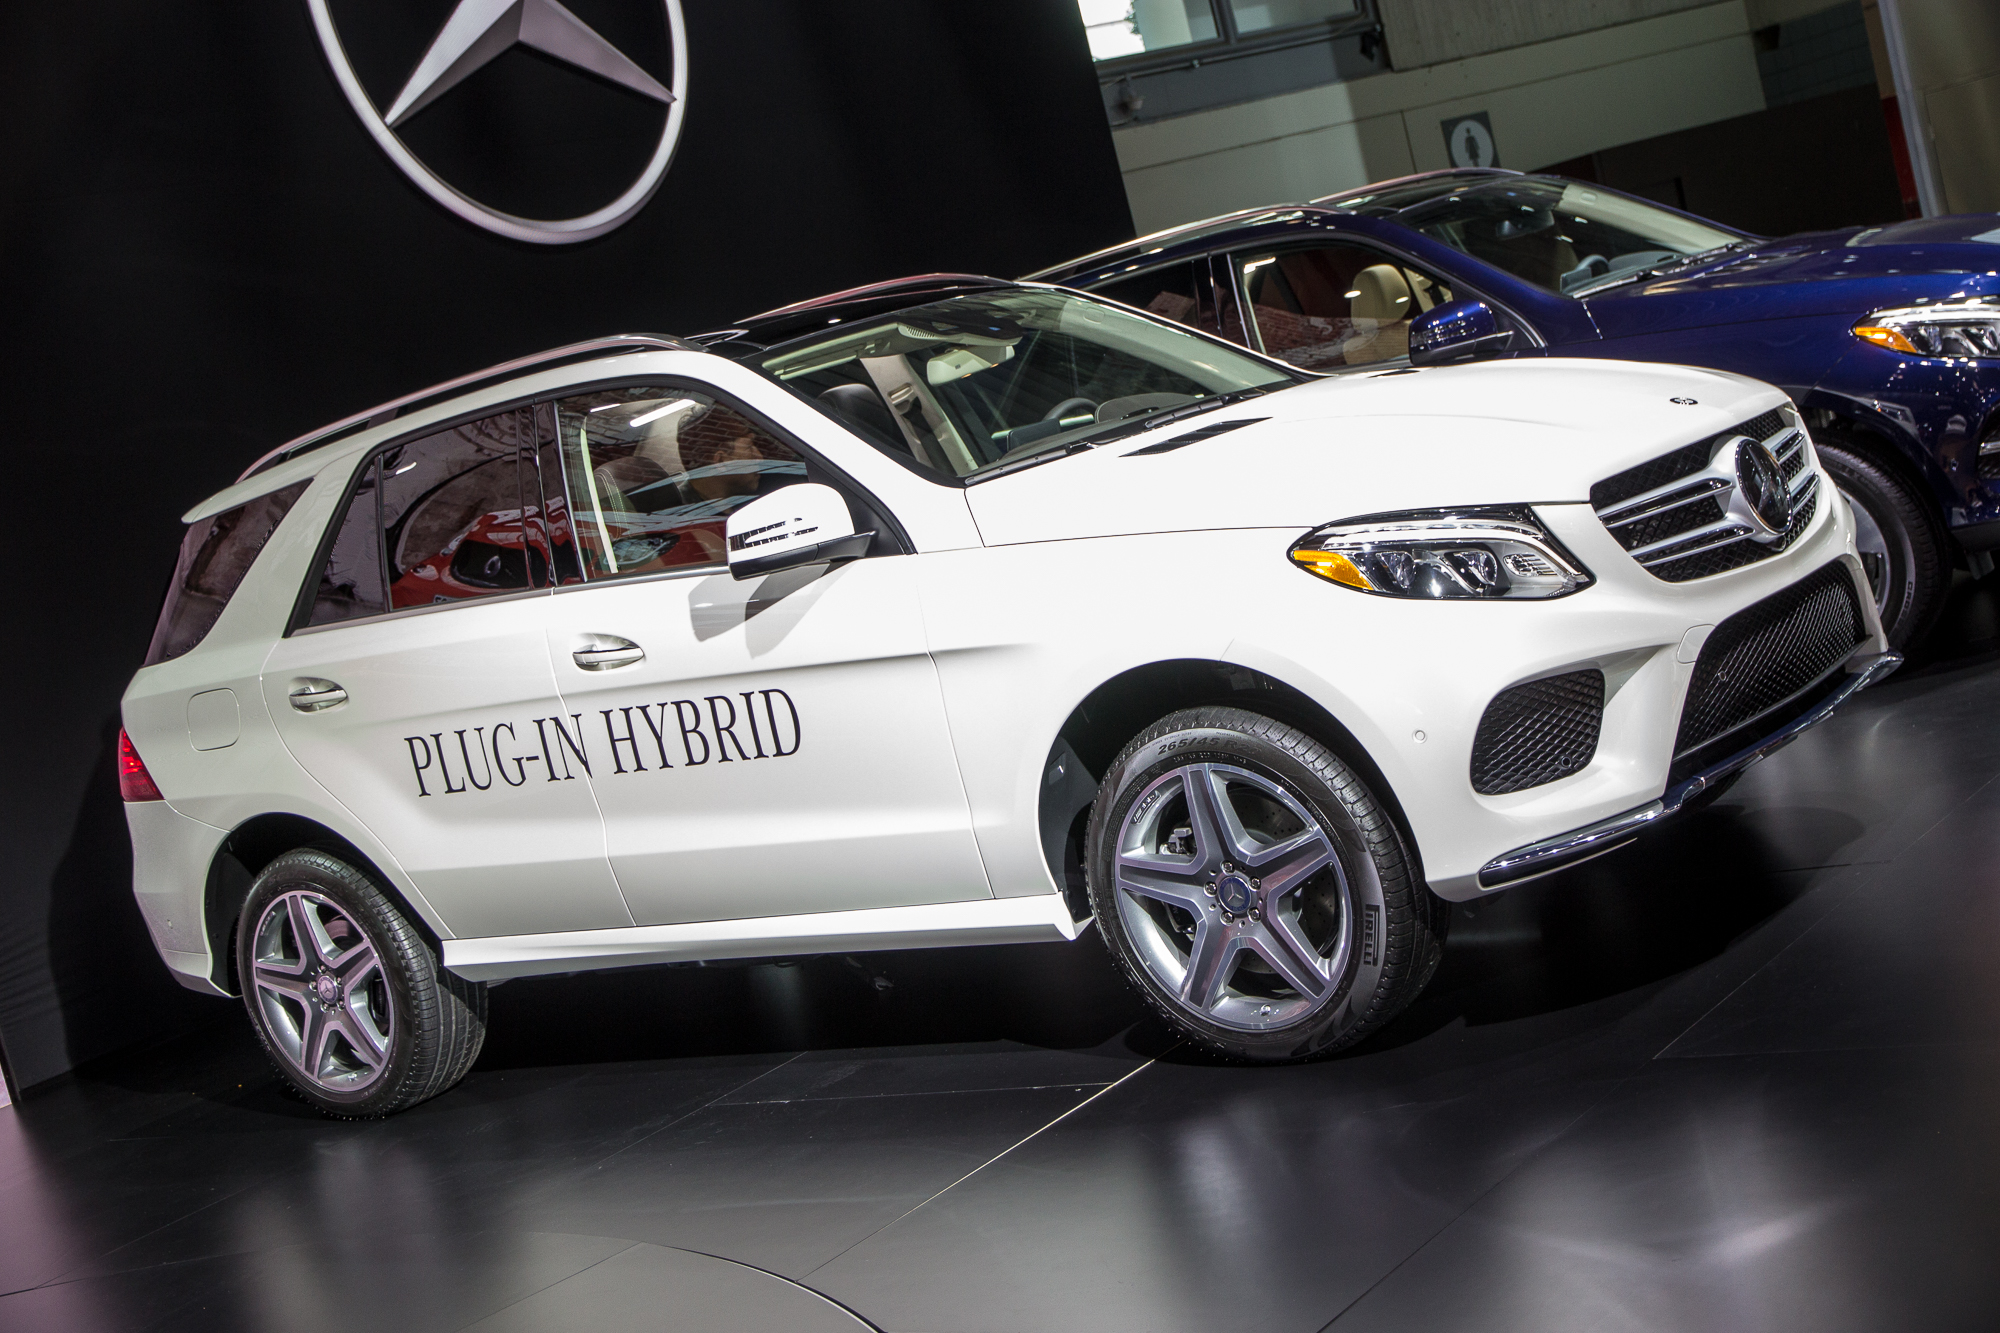 https://images.hgmsites.net/hug/2016-mercedes-benz-gle-550e-plug-in-hybrid-2015-new-york-auto-show_100507241_h.jpg